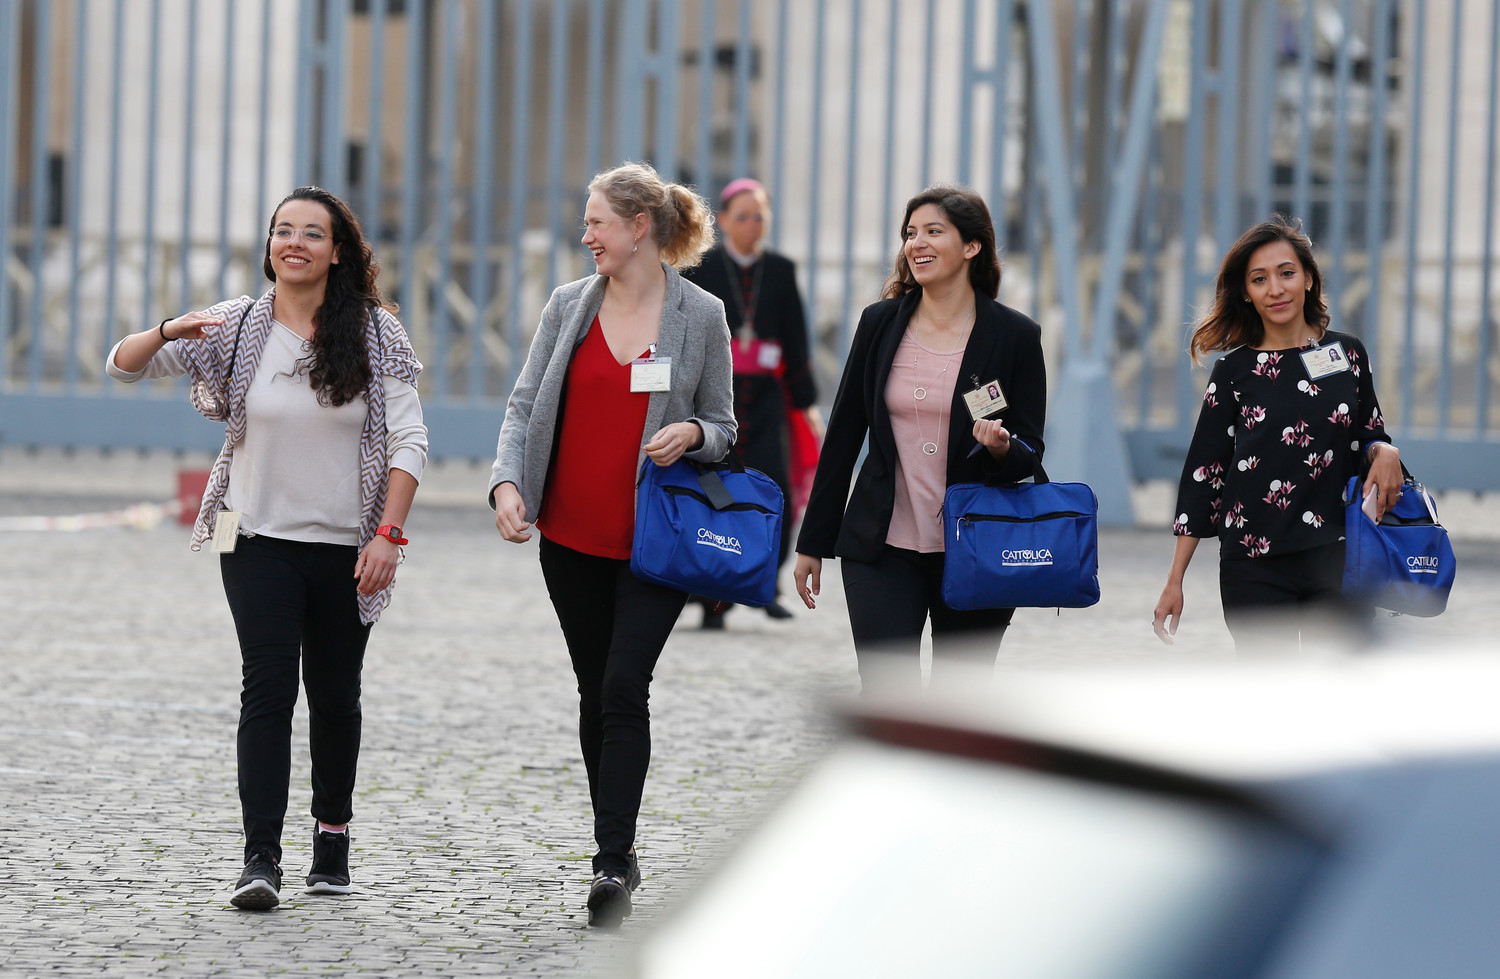 Synod youth delegates arrive for a session of the Synod of Bishops on young people, the faith and vocational discernment at the Vatican Oct. 16.